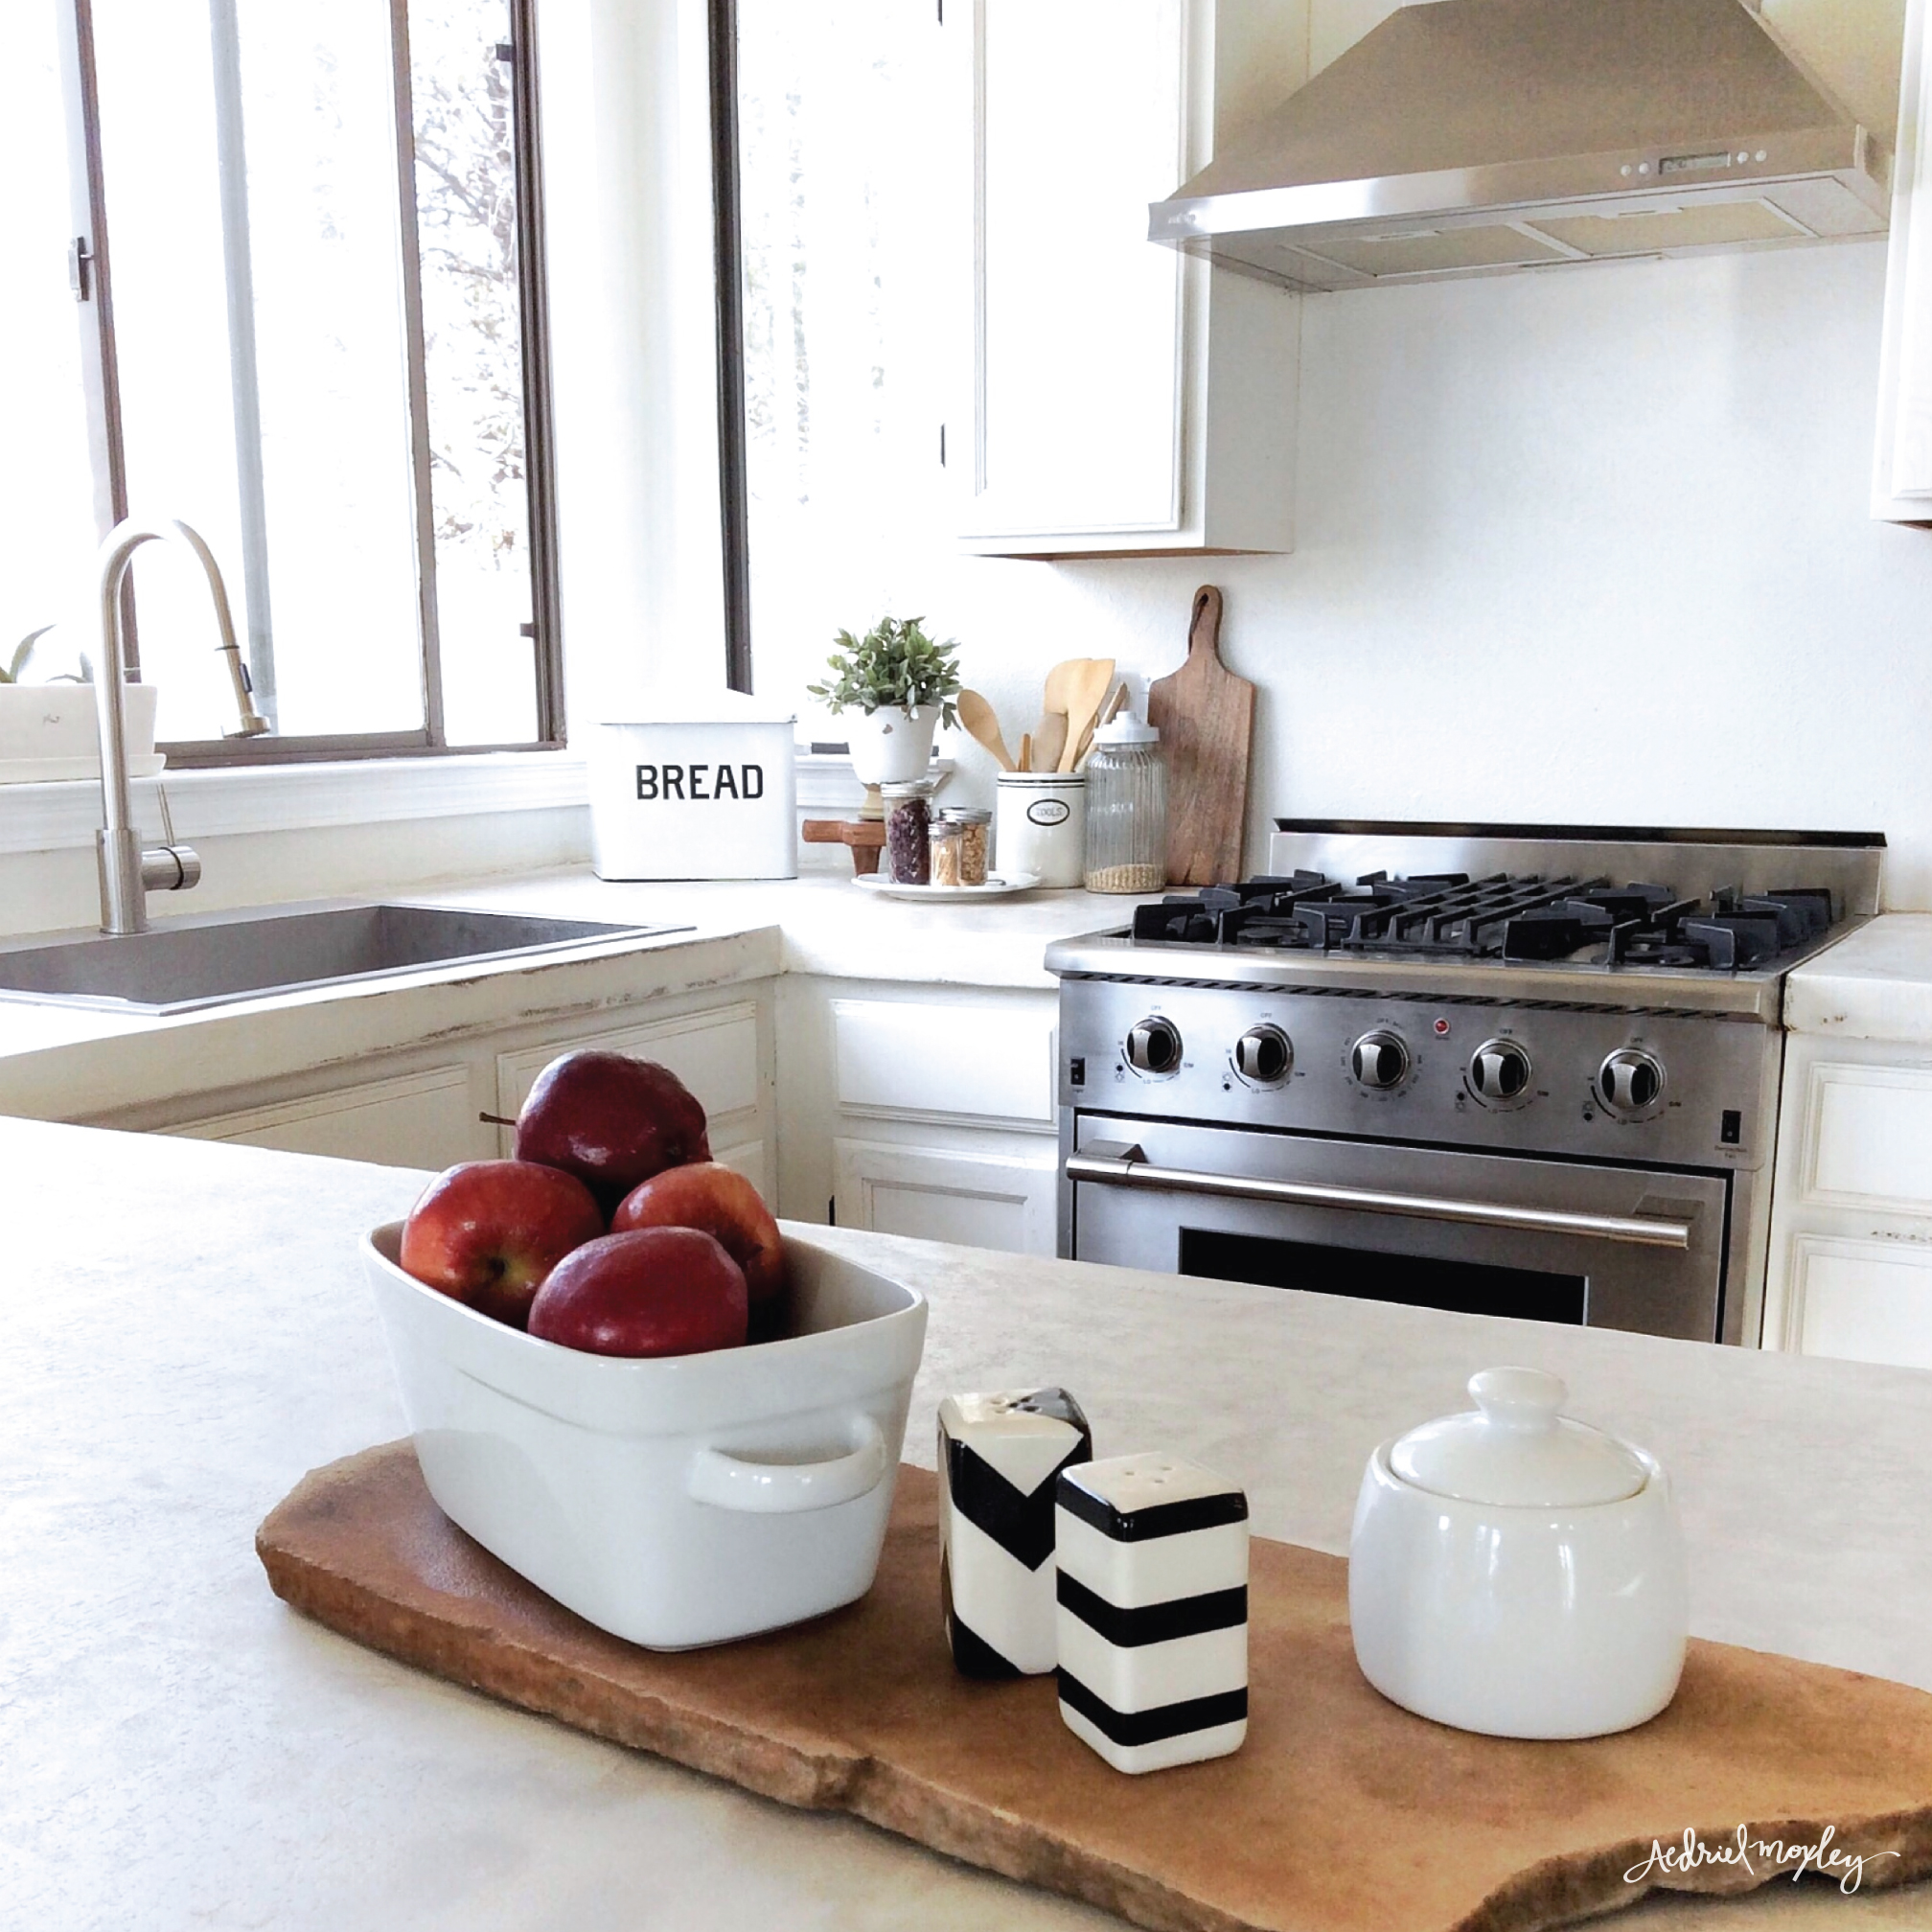 Before & After Aedriel Moxley House Tour: Kitchen